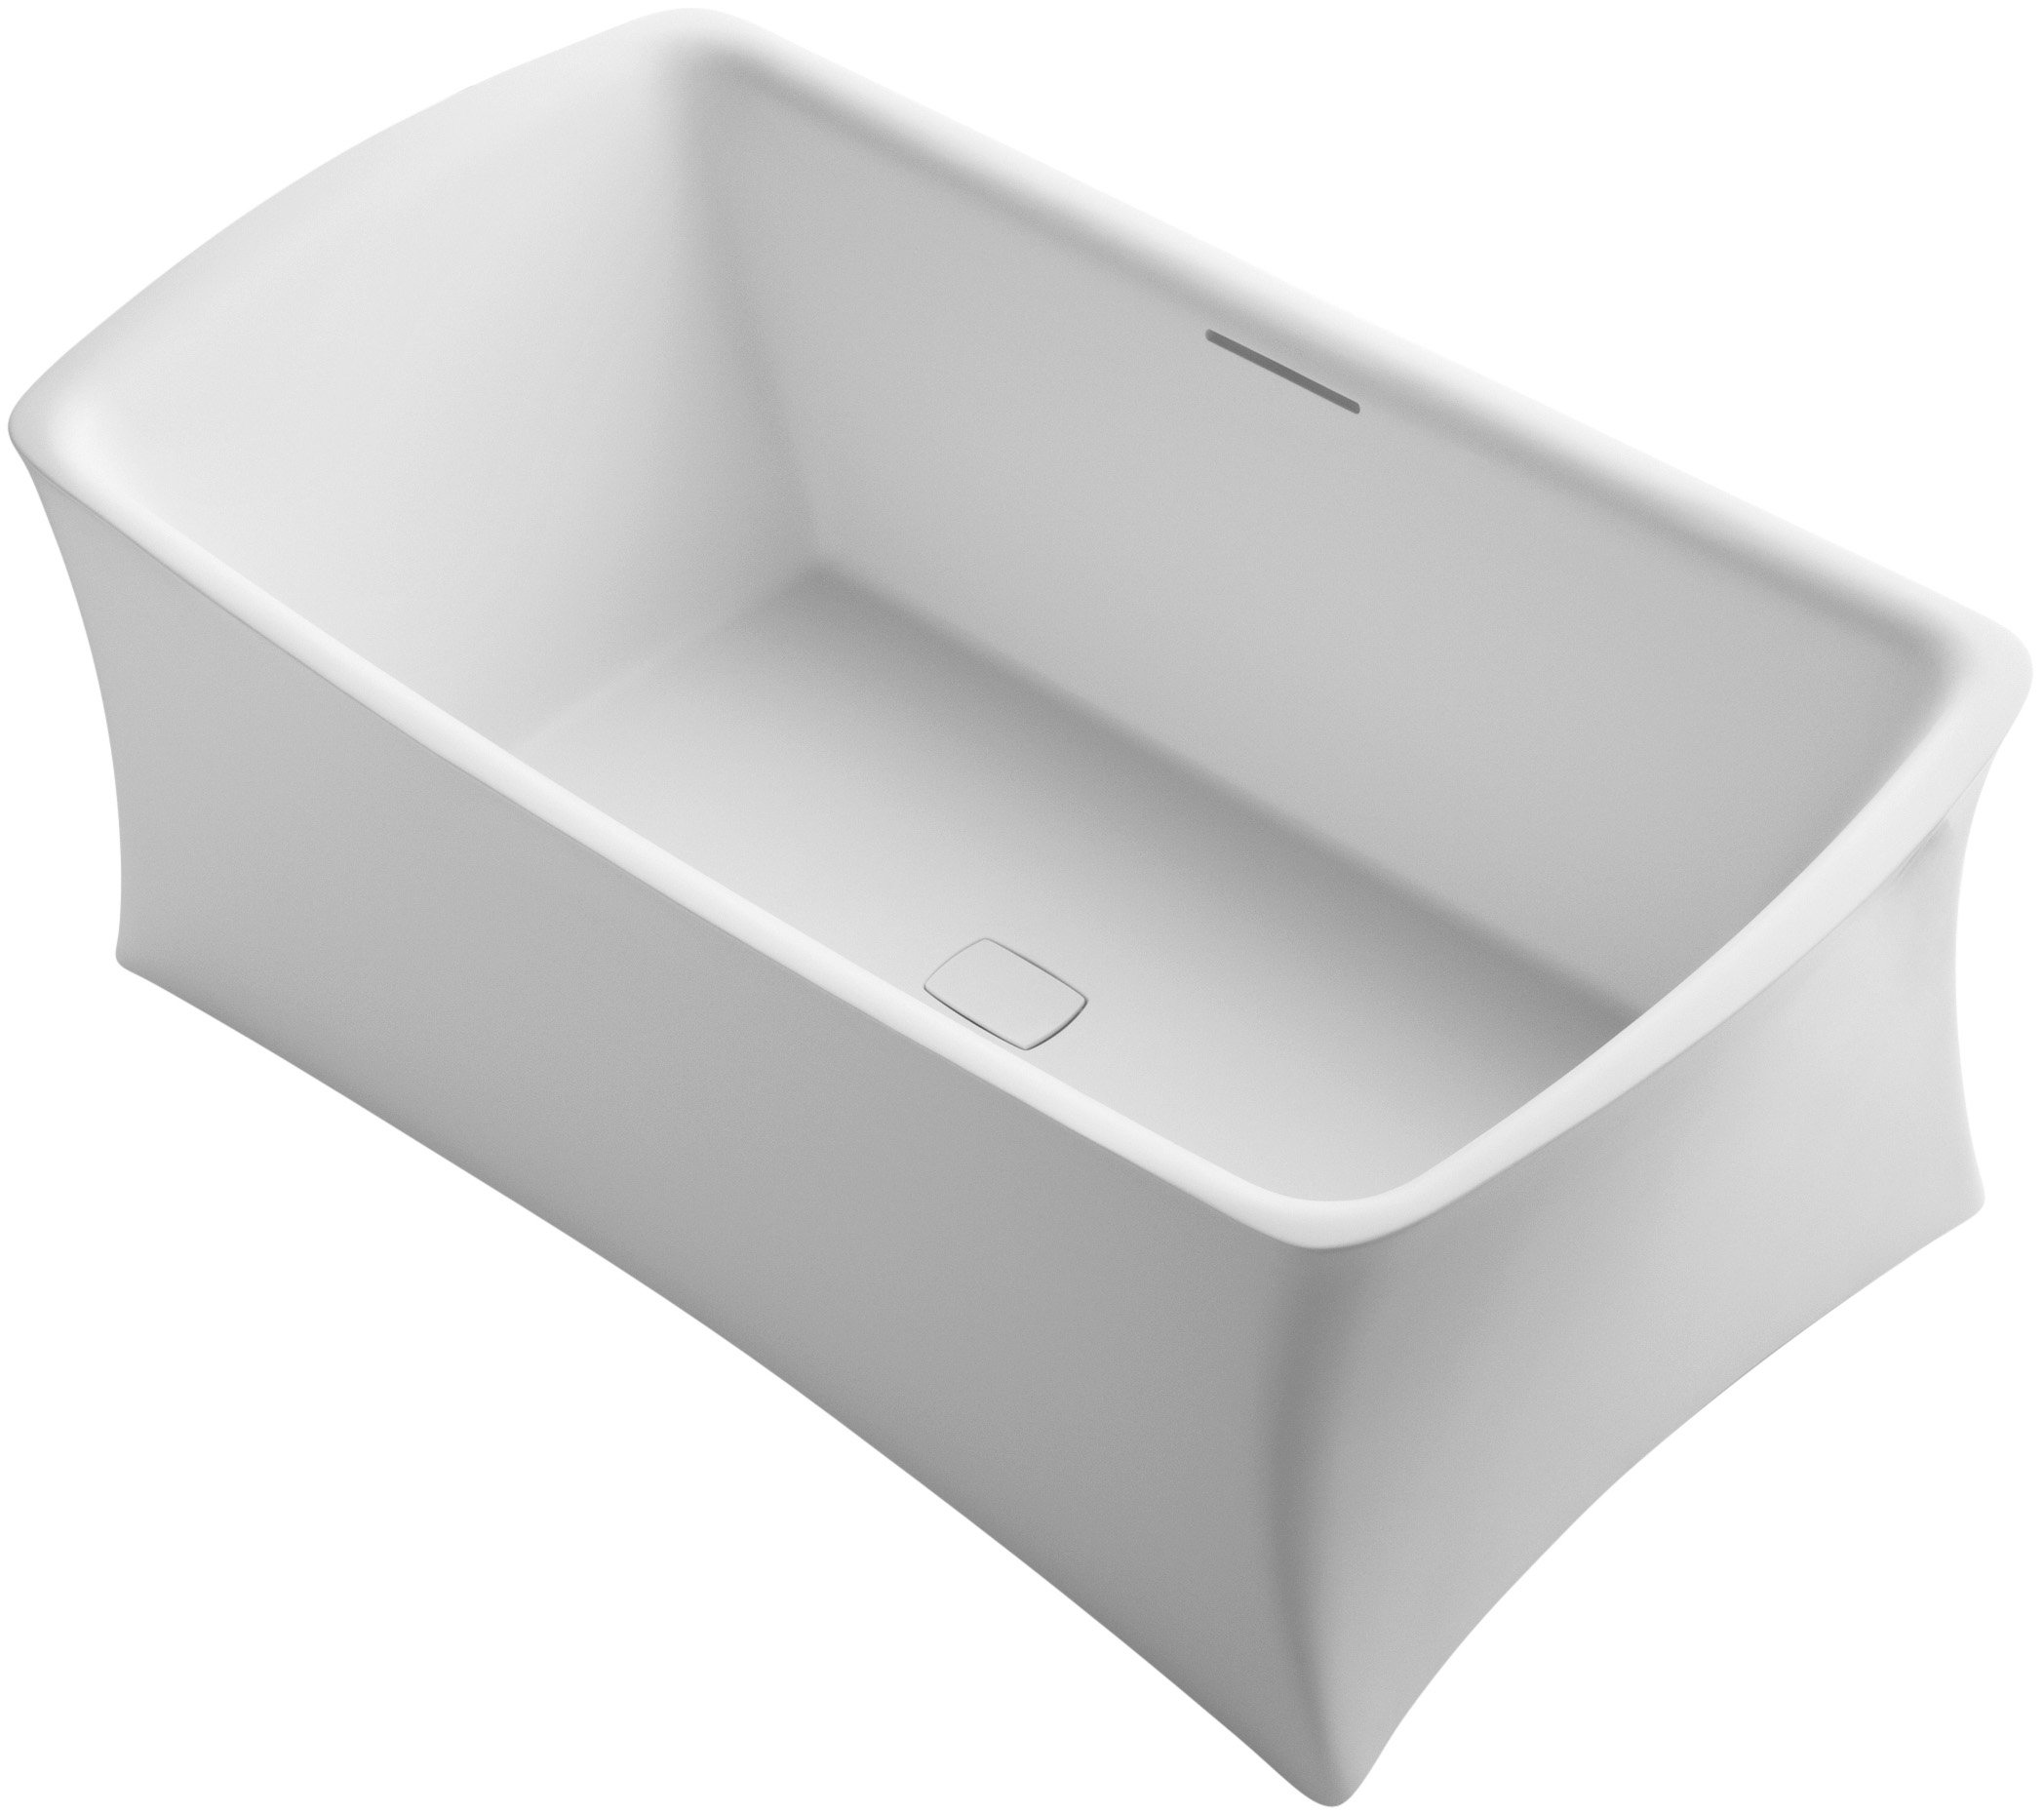 KOHLER K-1805-HW1 Aliento Freestanding Bath, Honed White